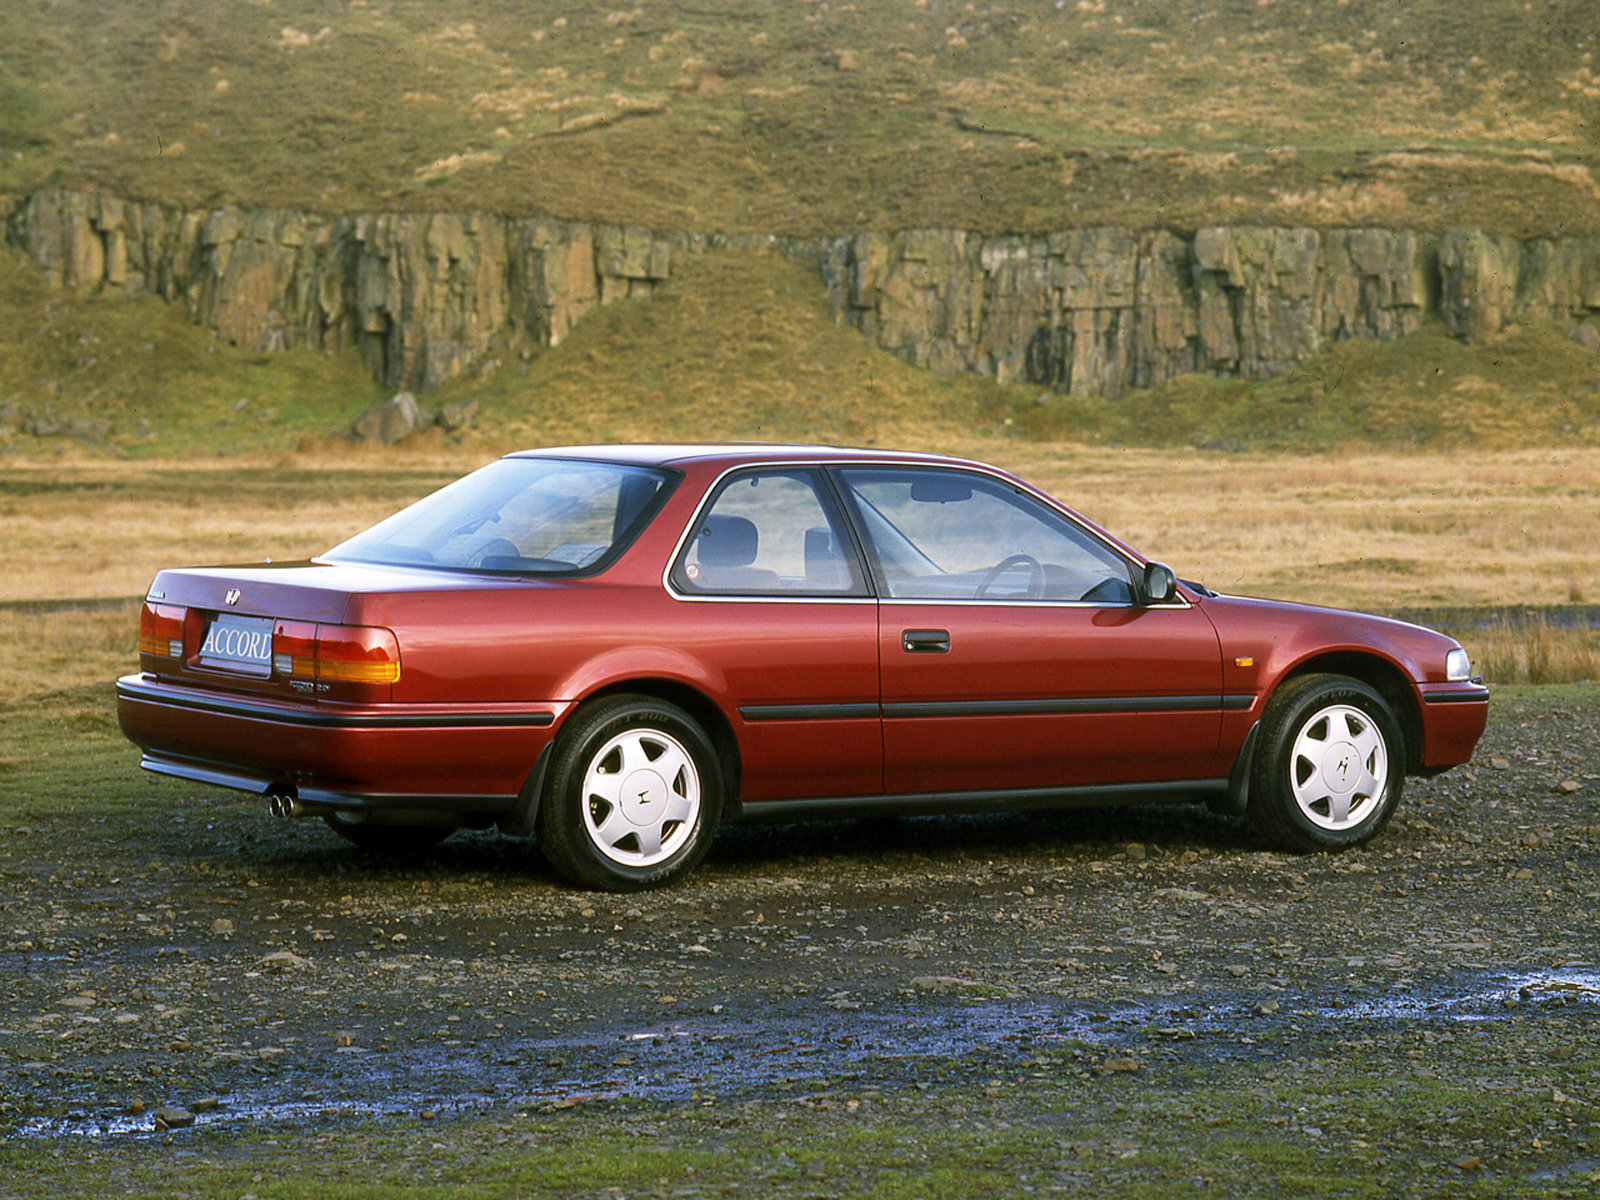 1991 honda accord iv coupe cc1 pictures information and specs honda accord iv coupe cc1 1991 models 14 publicscrutiny Image collections